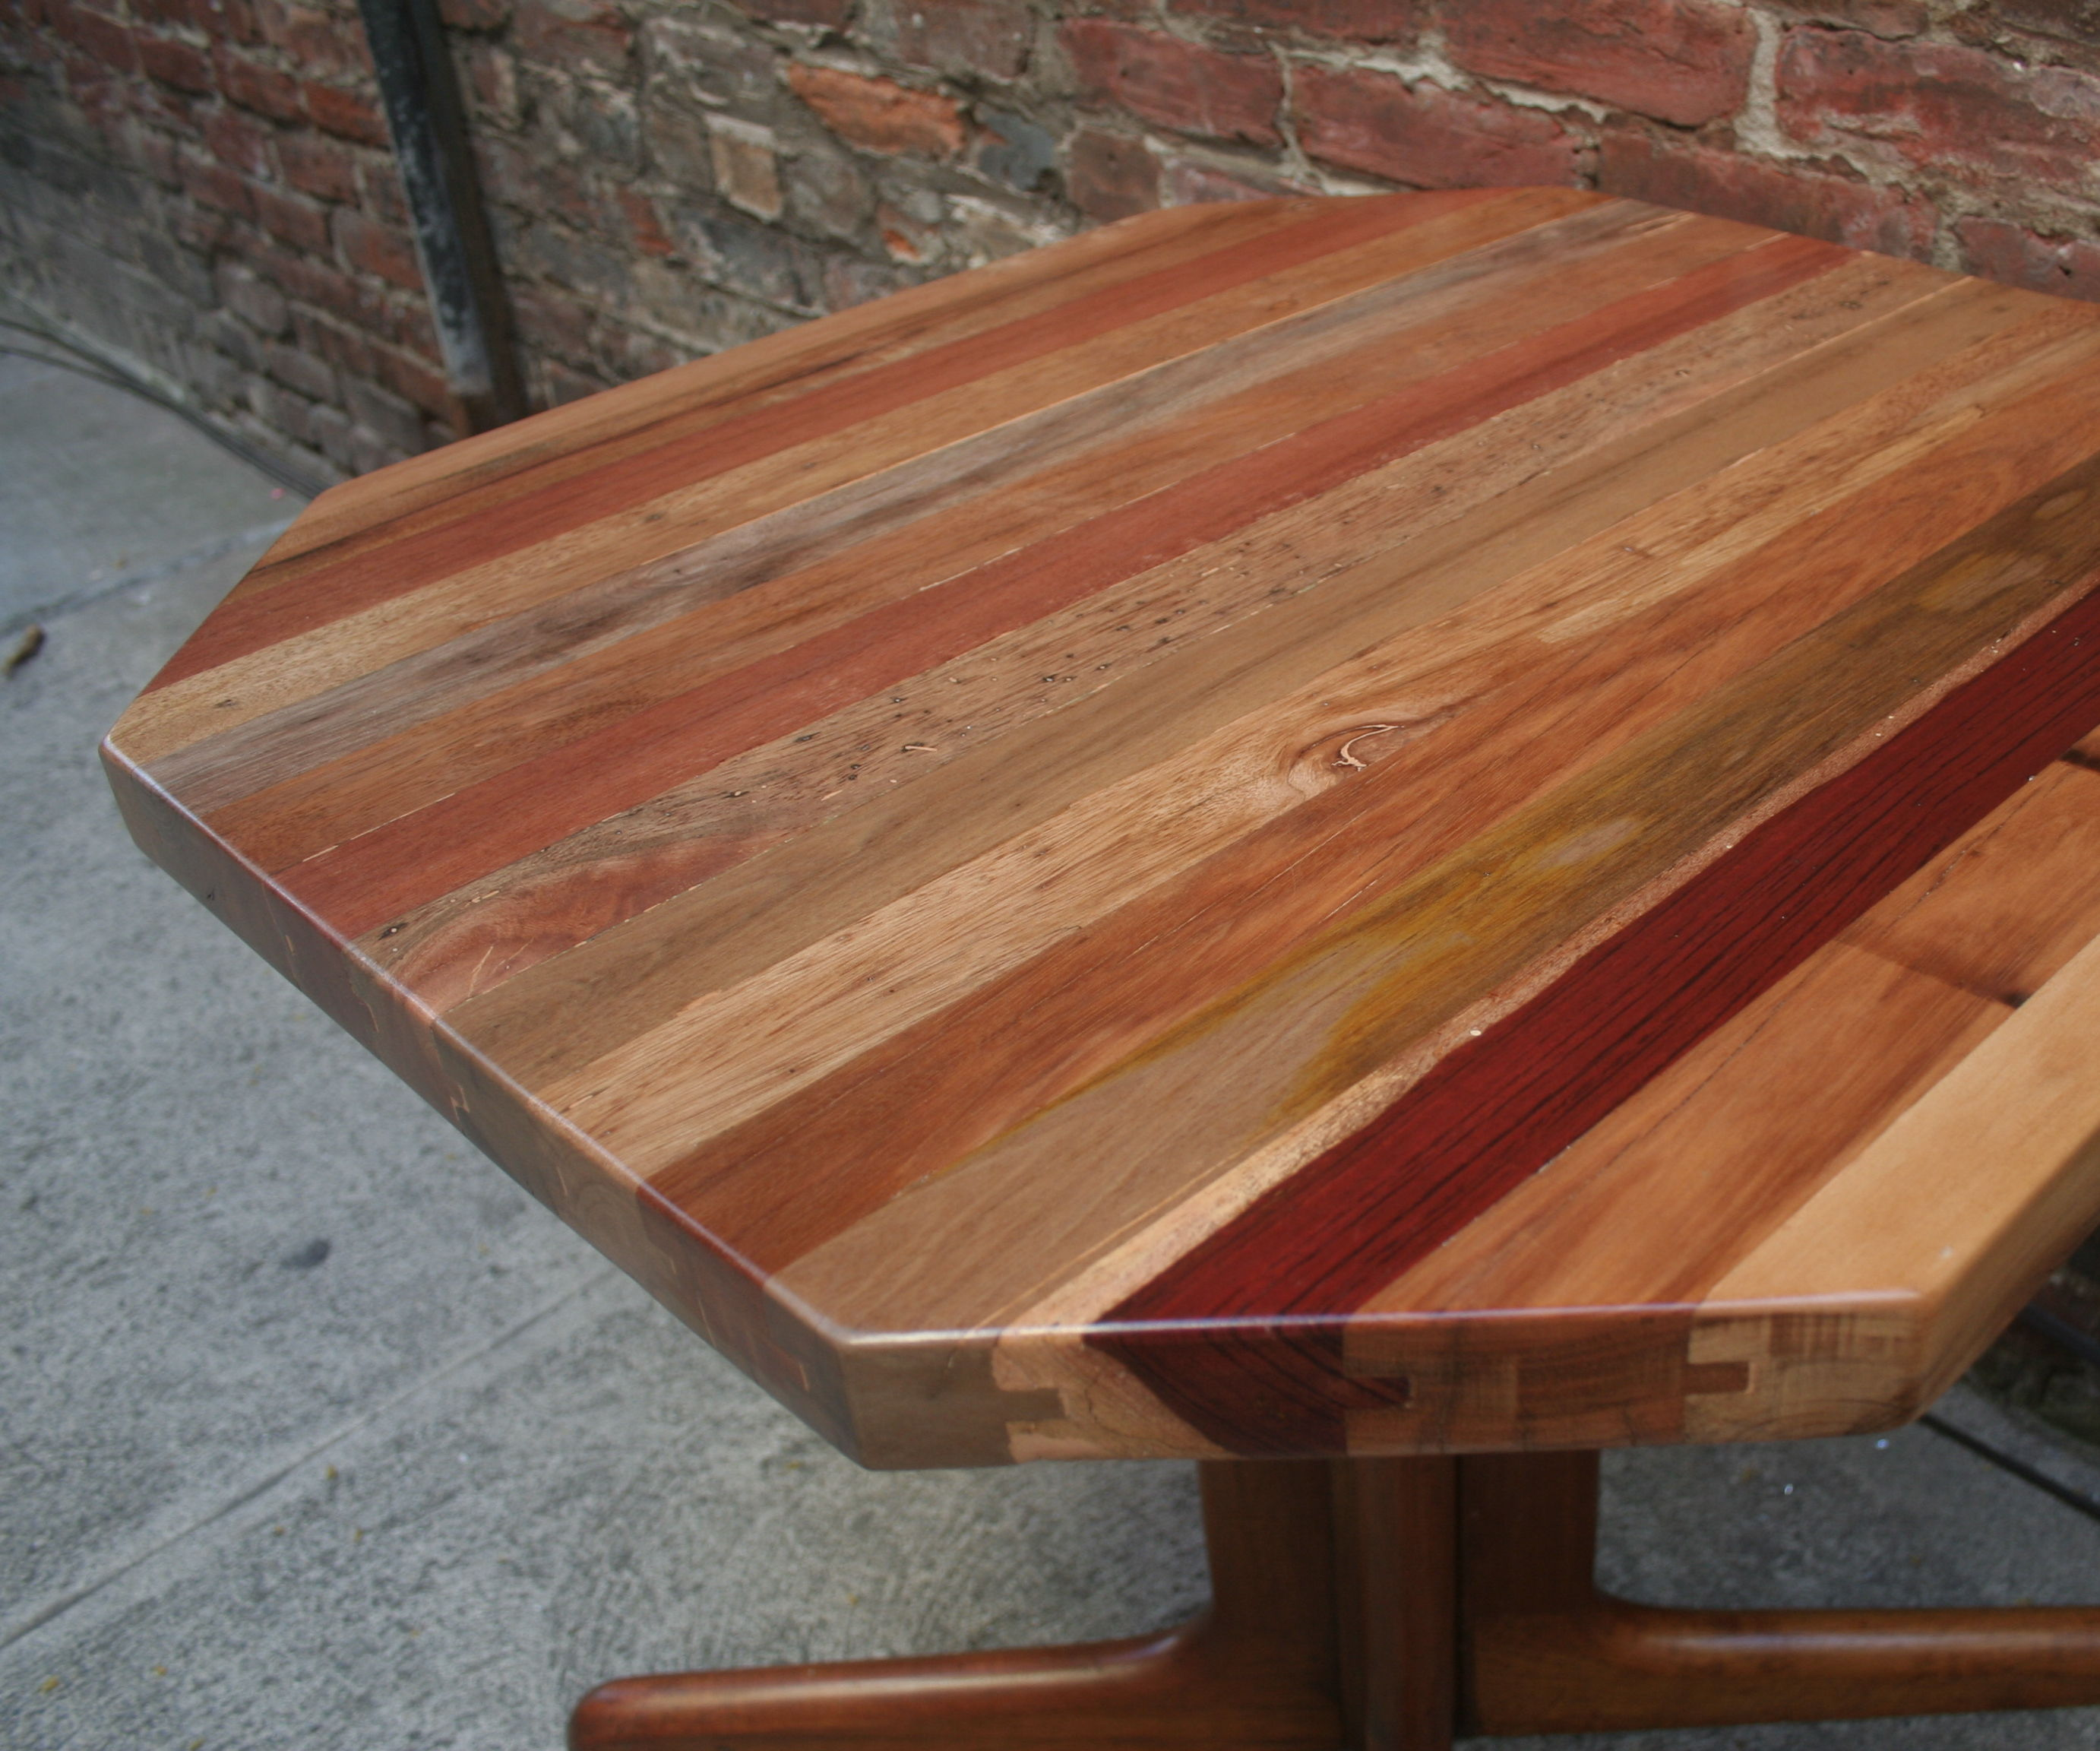 How to Make a Reclaimed Tongue & Groove Table Top